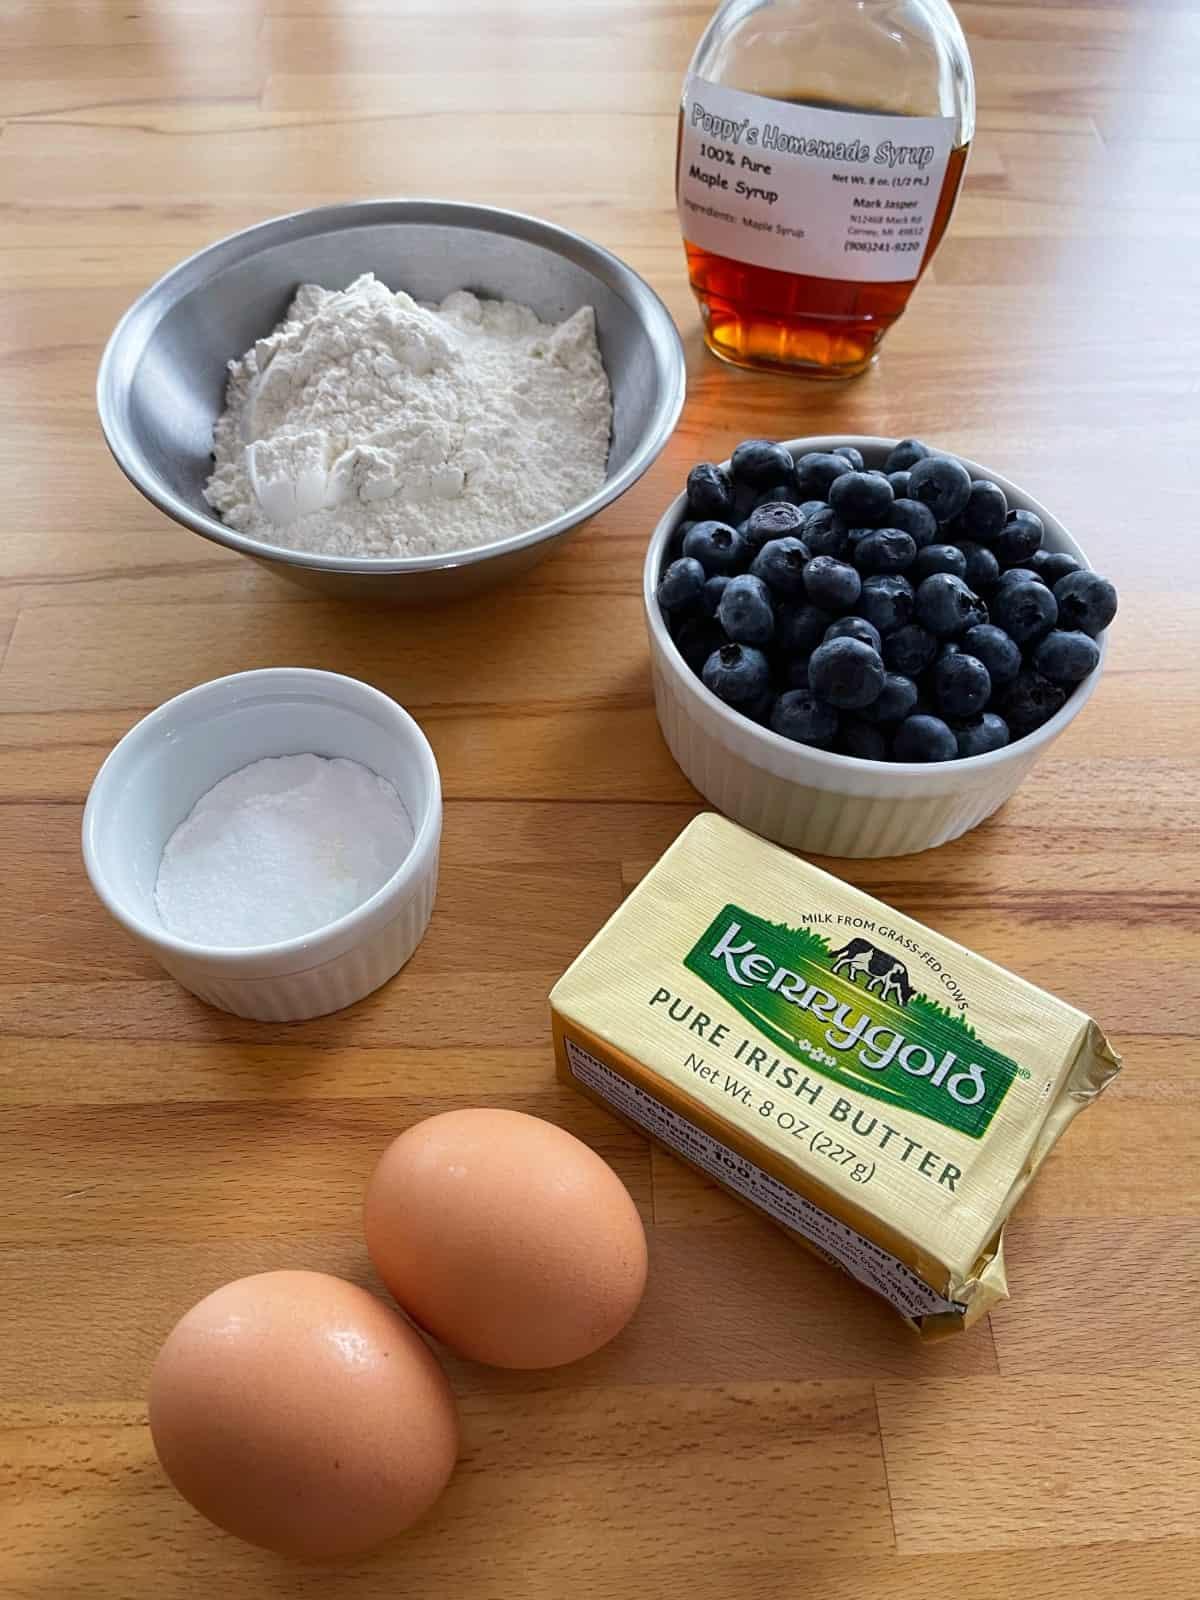 Maple syrup, flour, baking soda, salt, blueberries, butter and eggs on wooden table.